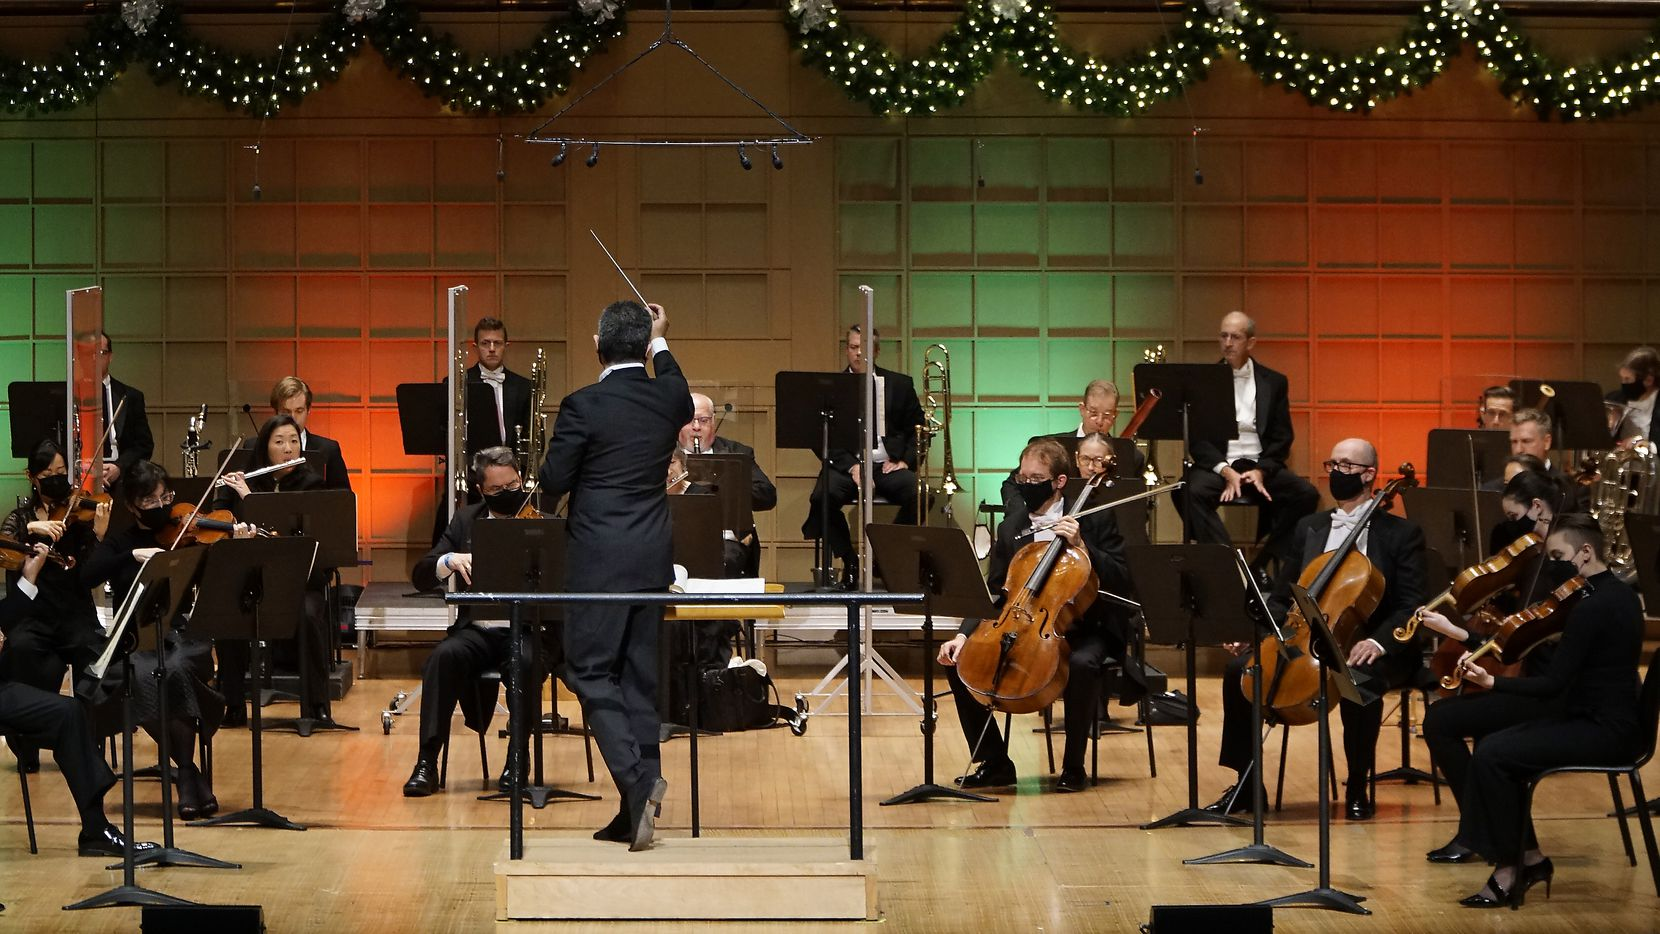 Guest conductor Andrew Grams leads the Dallas Symphony Orchestra in Tchaikovsky's 'Nutcracker' at the Meyerson Symphony Center in Dallas on Friday, Nov. 27, 2020.